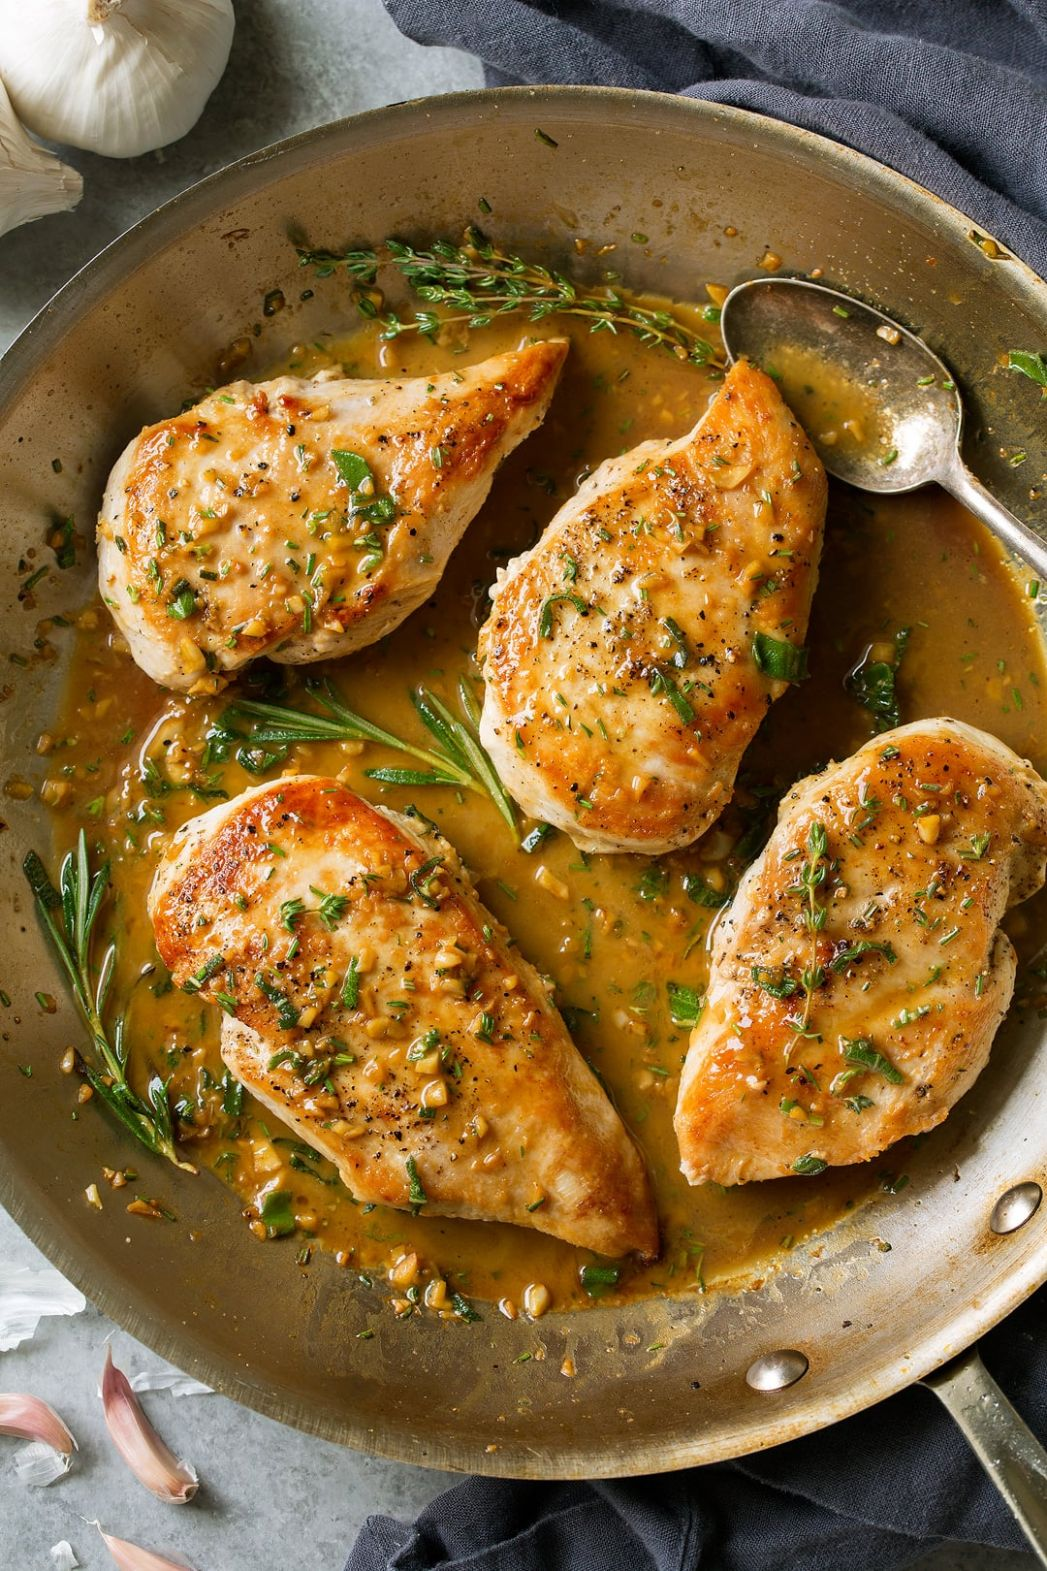 Skillet Chicken Recipe with Garlic Herb Butter Sauce - Cooking Classy - Recipes Chicken Breast Stovetop